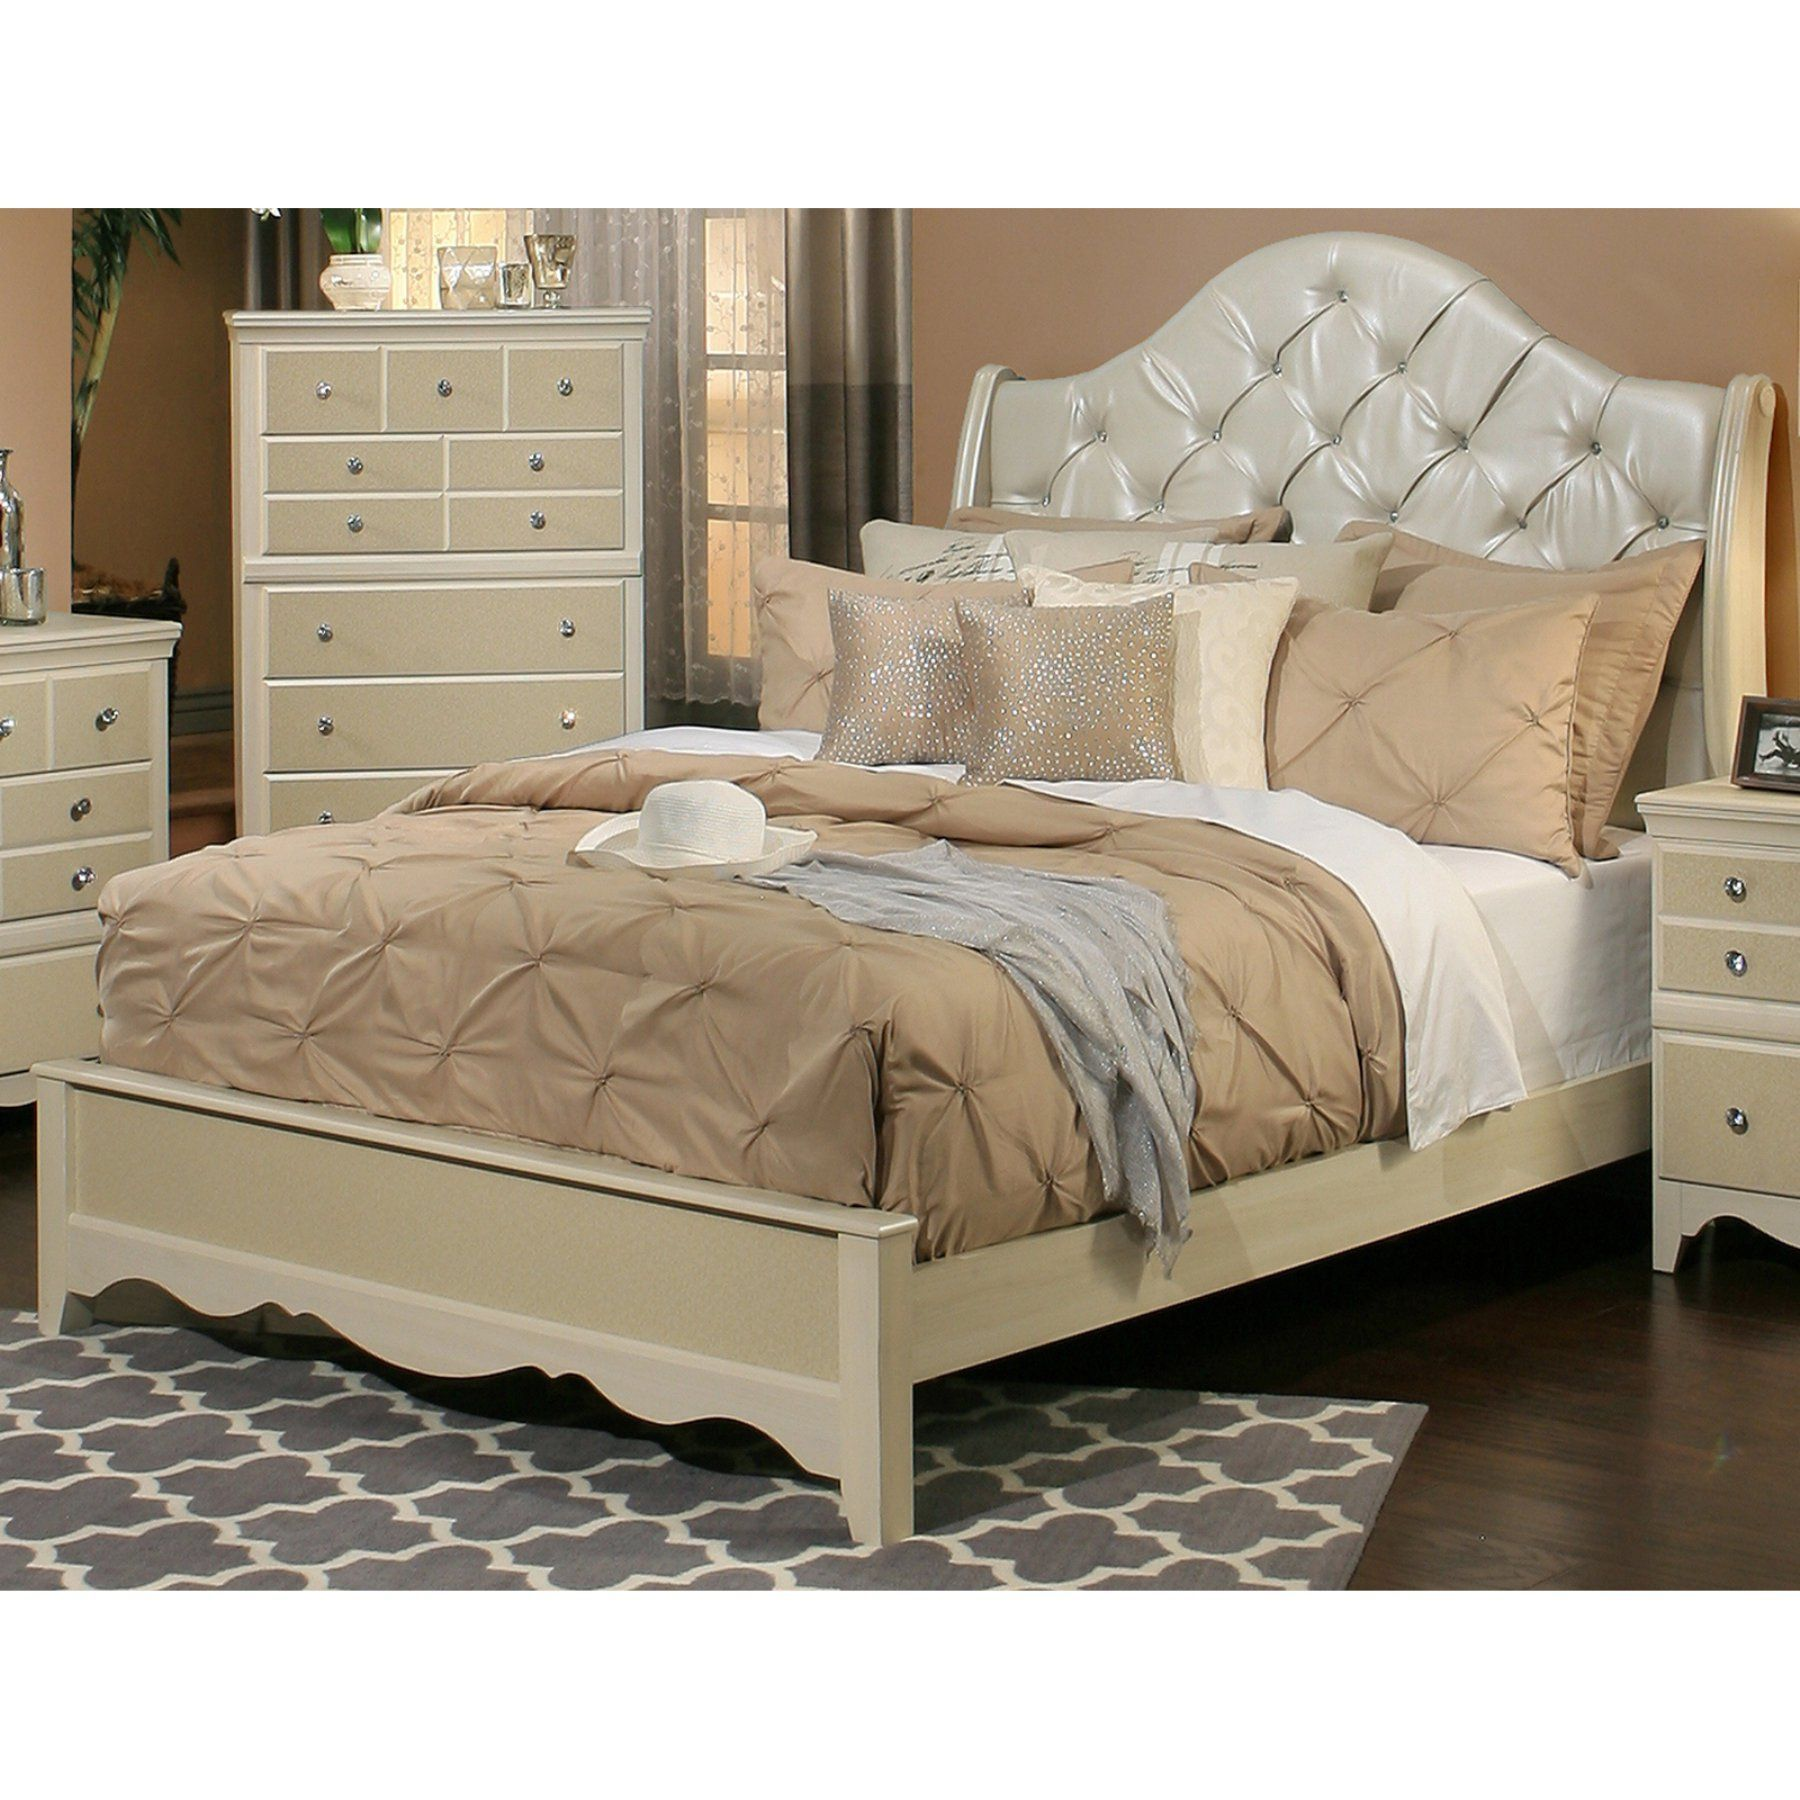 Sandberg Furniture Marilyn Estate Sleigh Bed  Sbf214